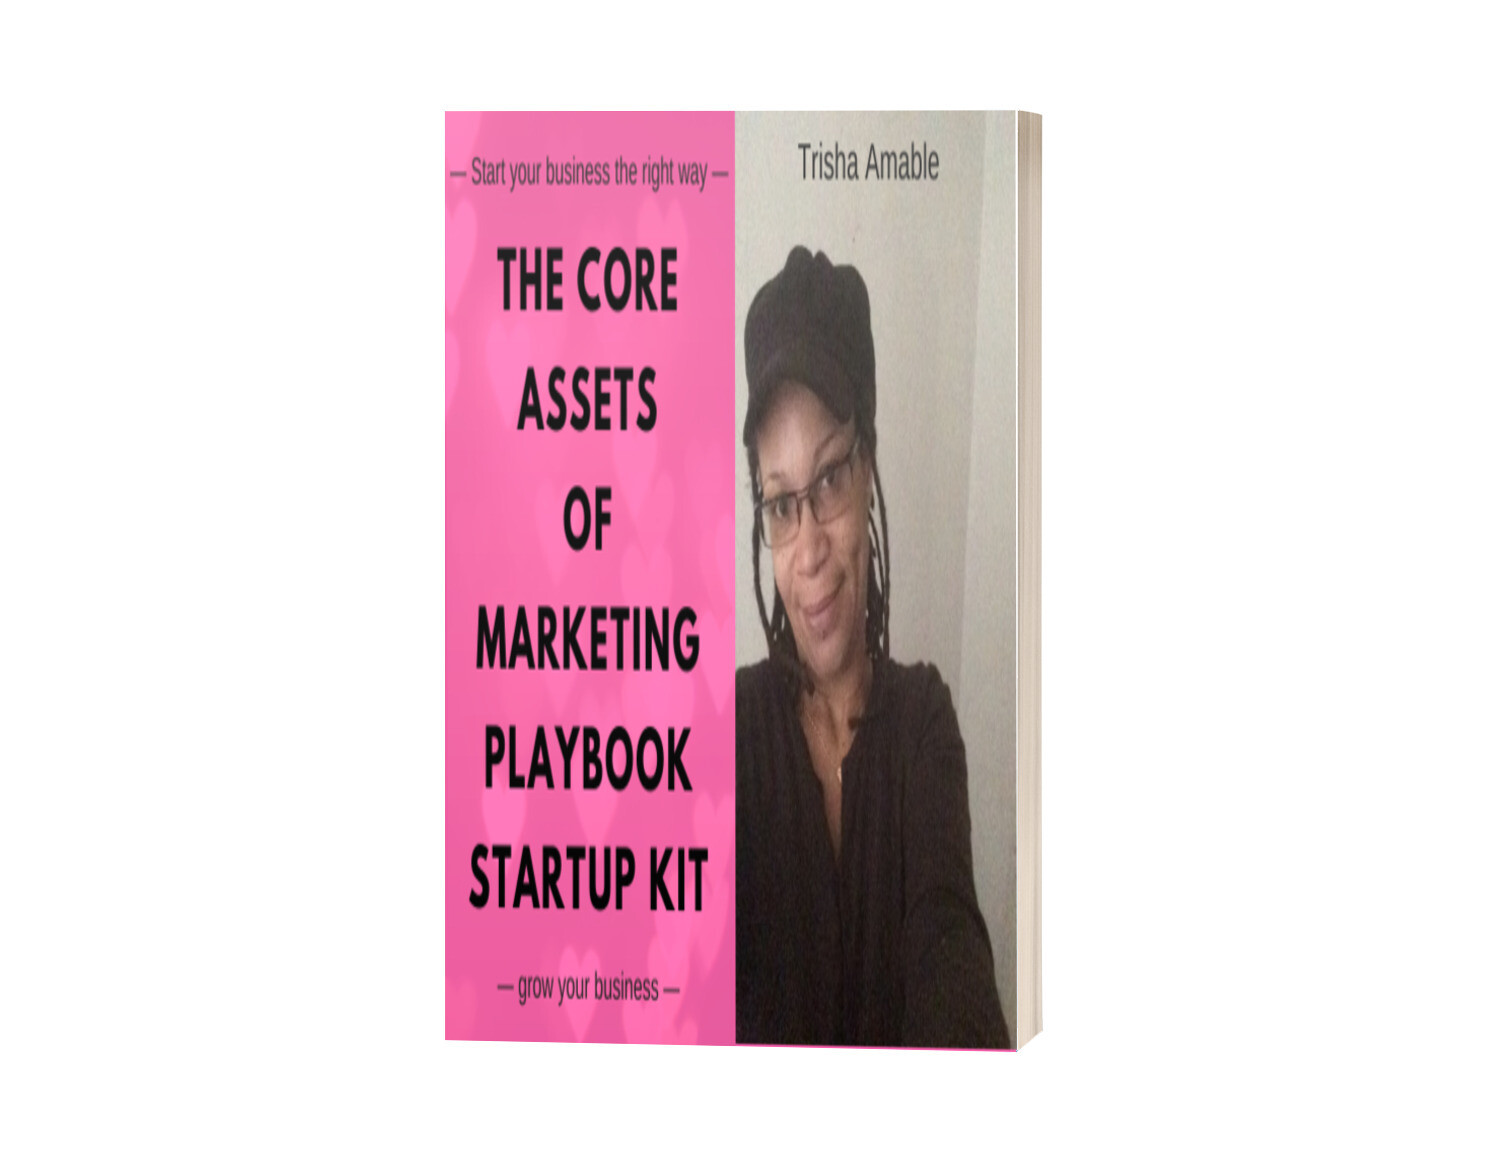 The Core Assets of Marketing Startup Kit - Playbook